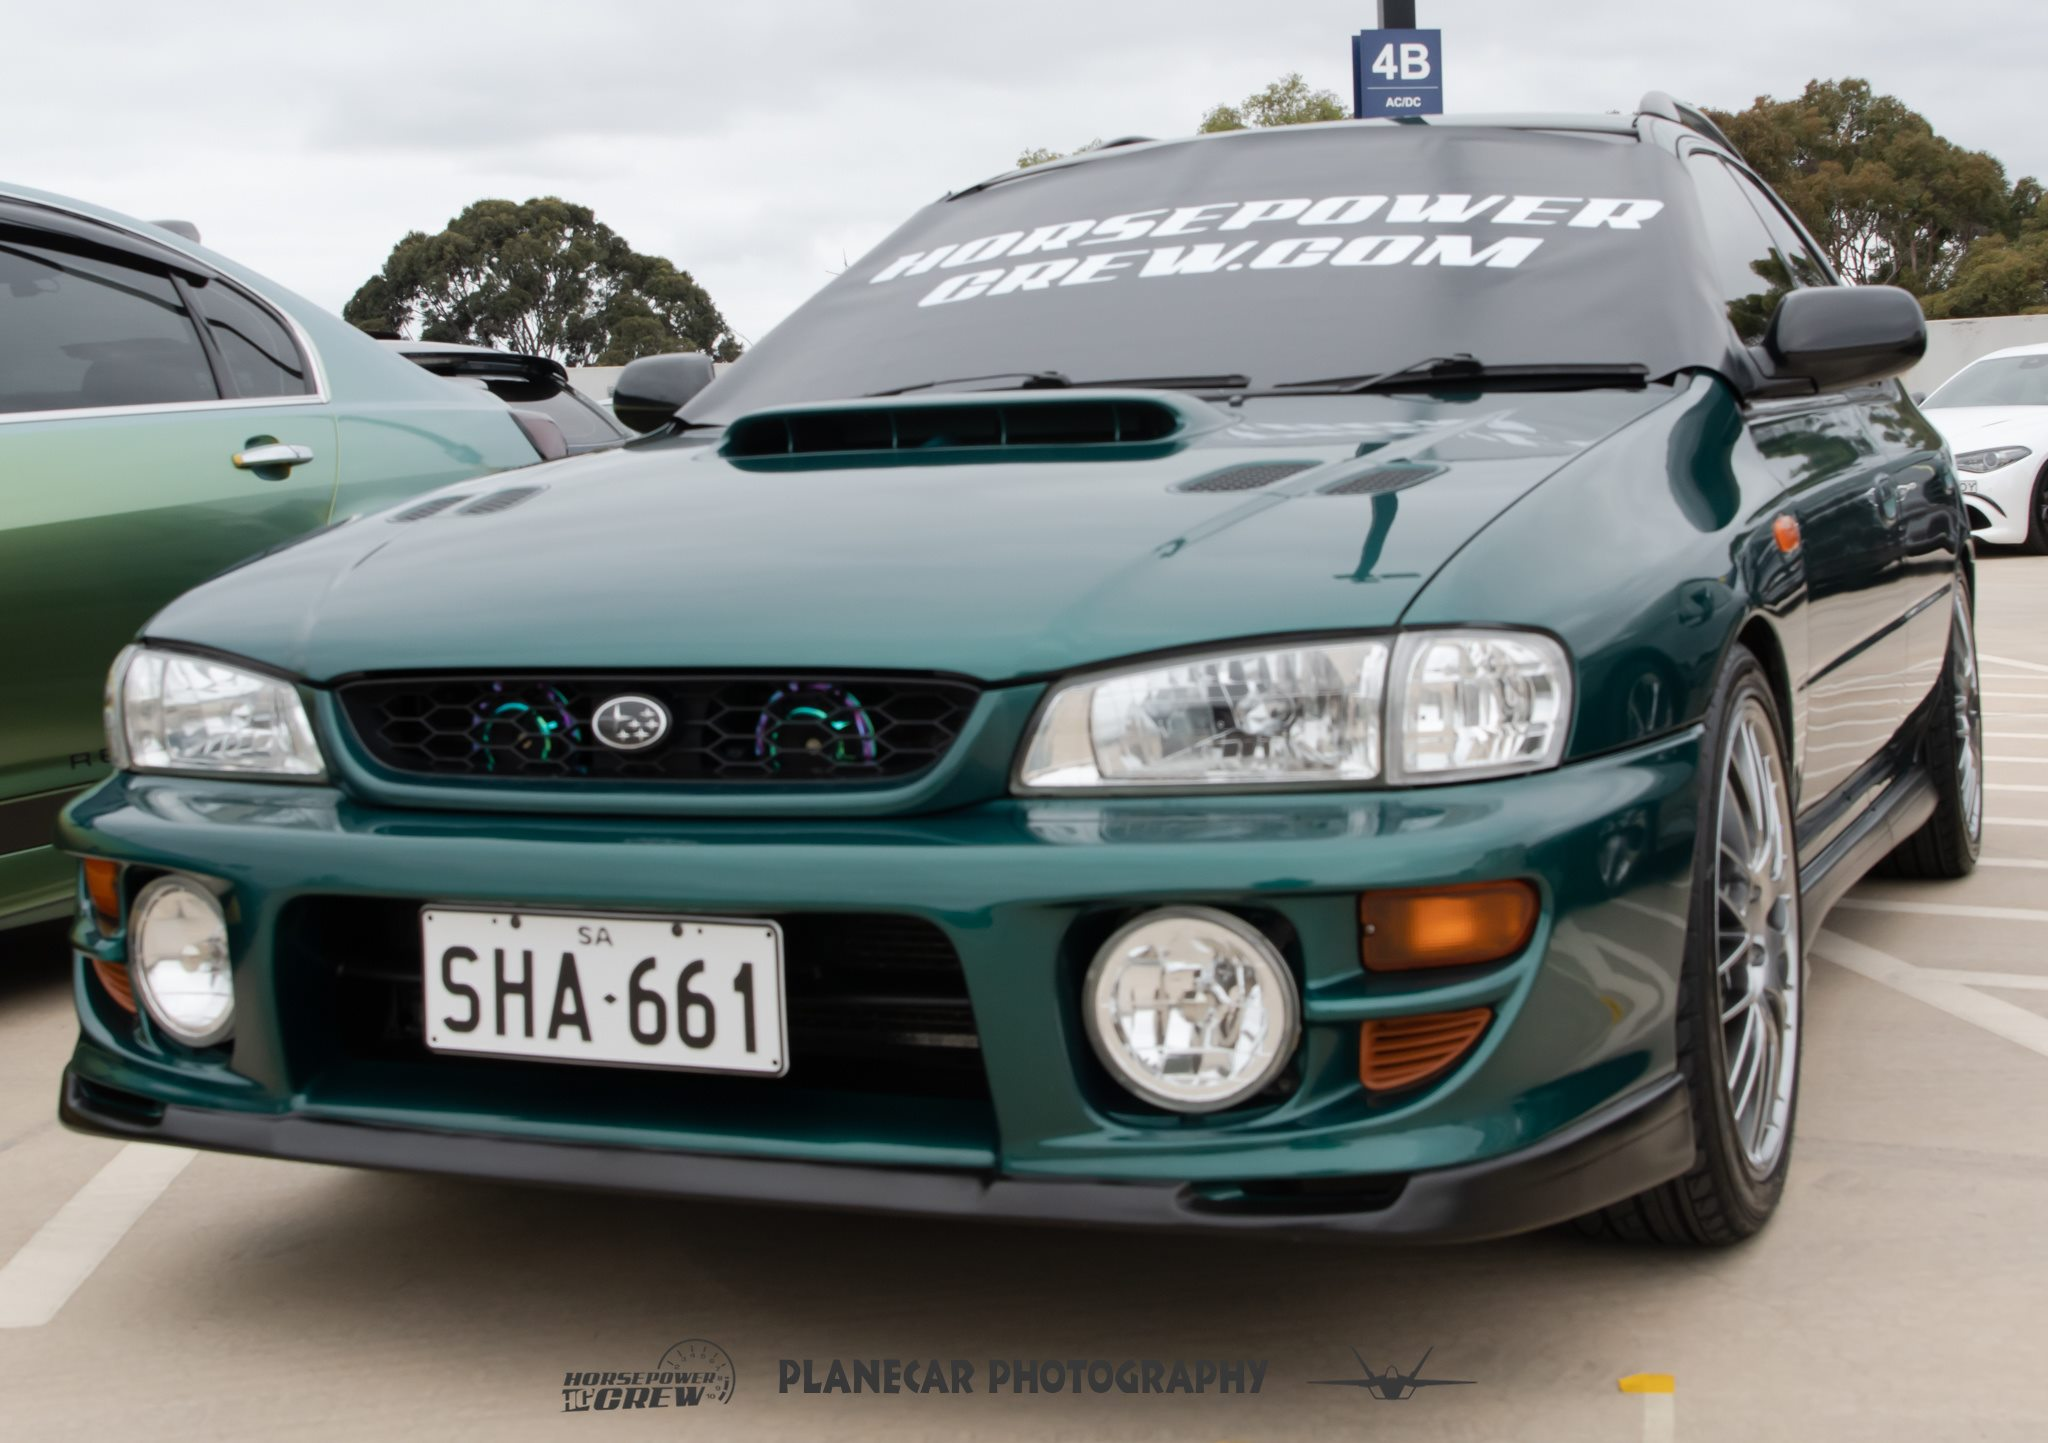 windscreen-cover-dot-com-modern-size-black-with-white-writing-green-WRX